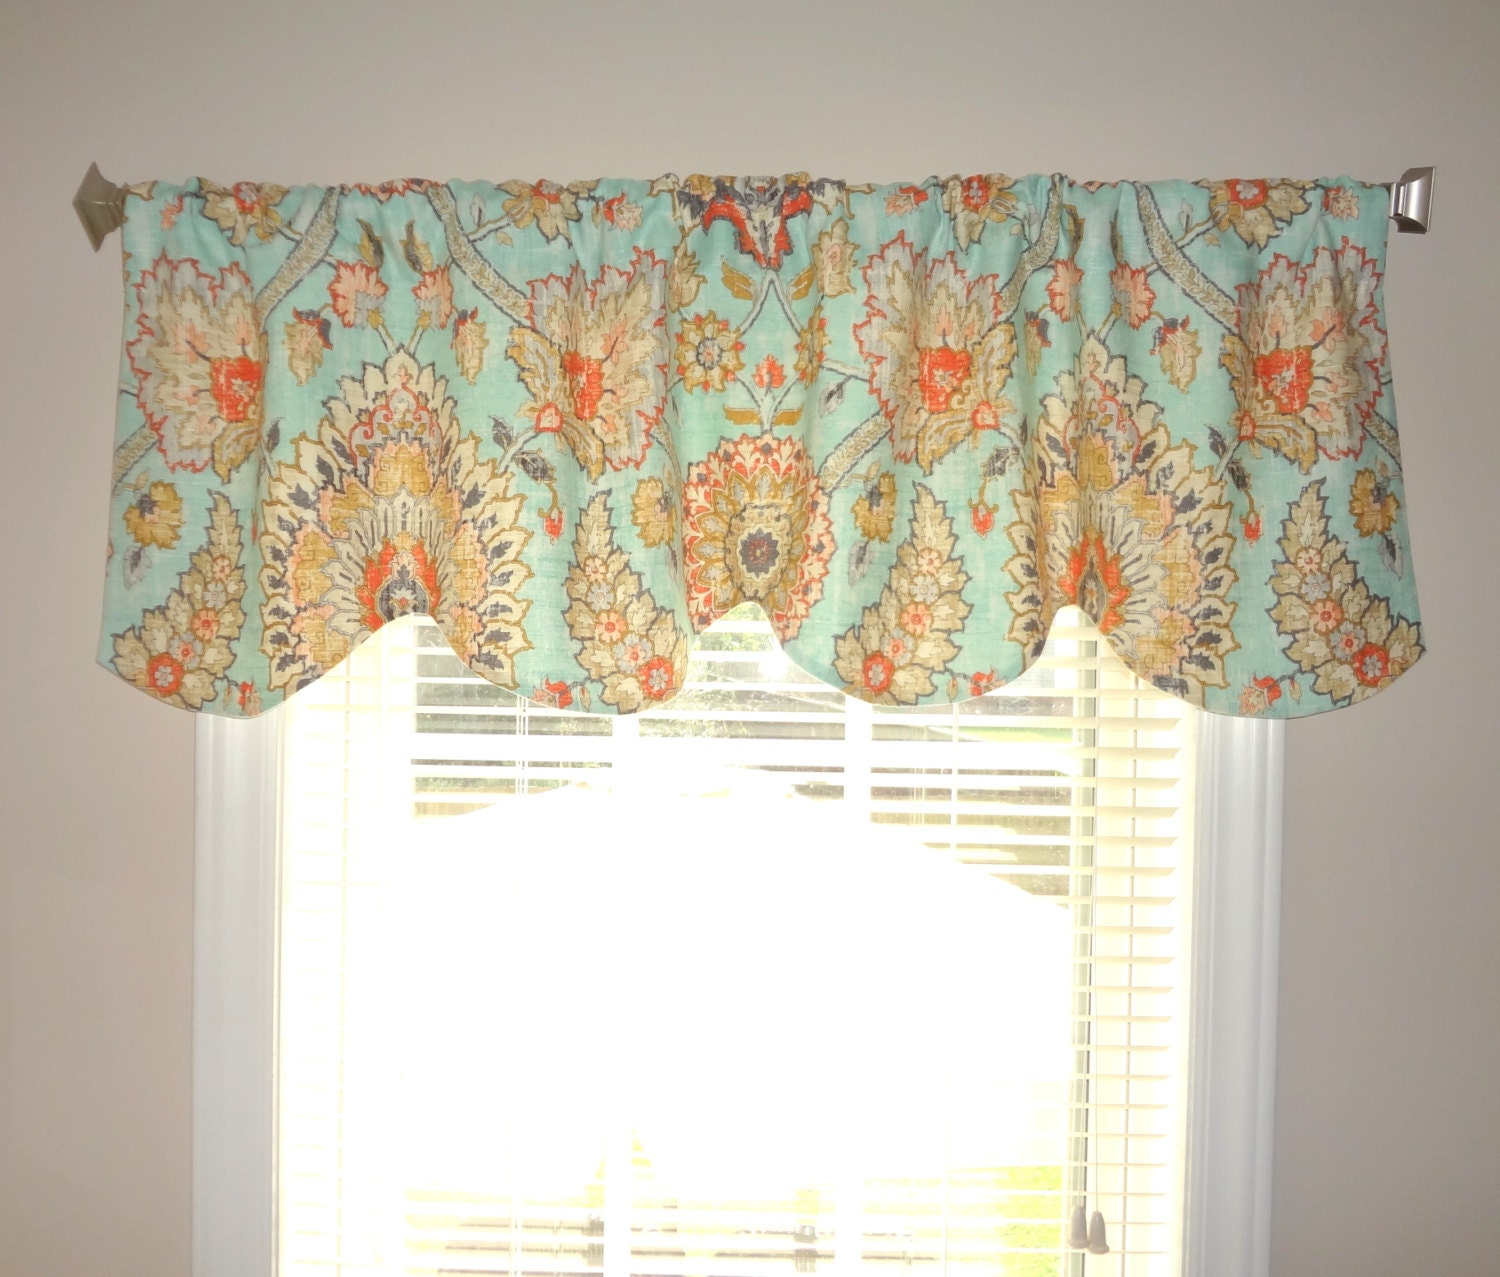 Waverly Scalloped Curtain Valance Topper Window Treatment